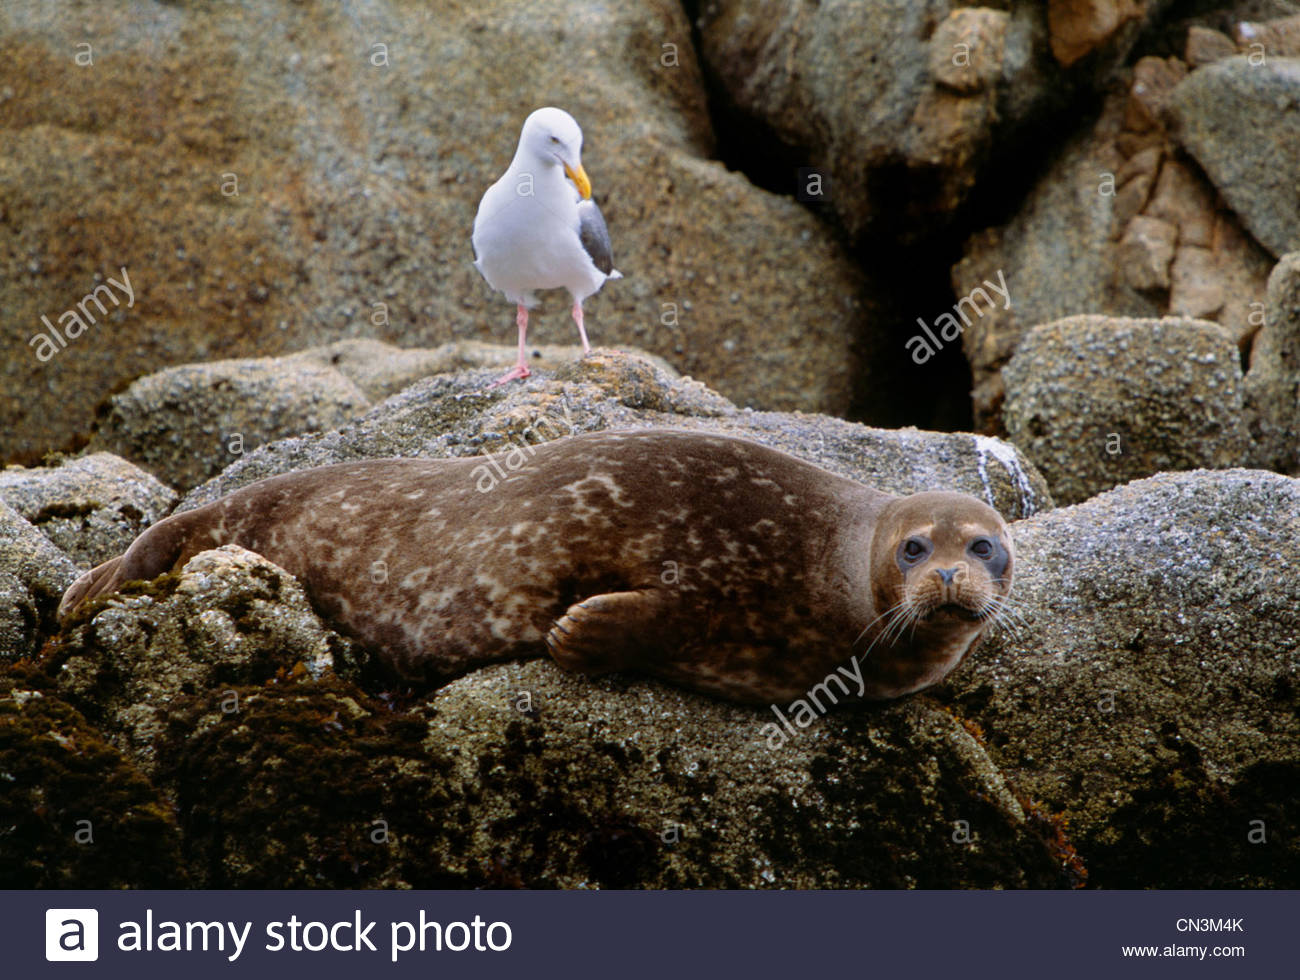 Harbor seal and gull, Monterey Bay, California - Stock Image